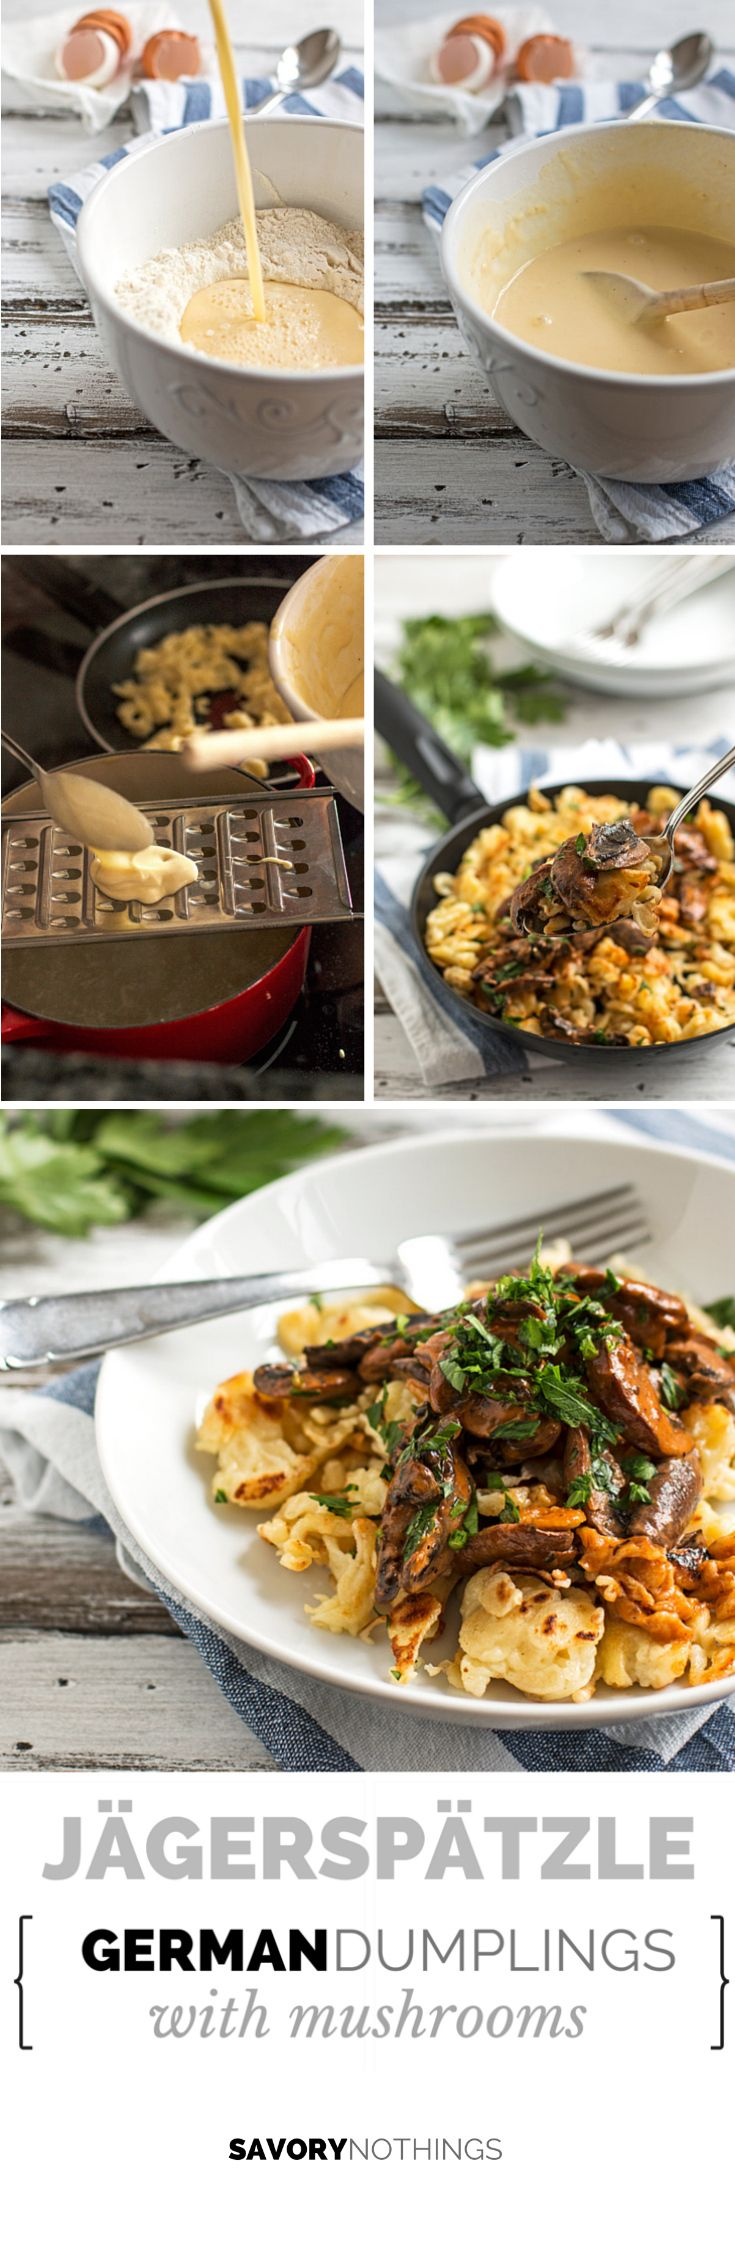 Jägerspätzle {German Dumplings with Mushrooms} | savorynothings.com